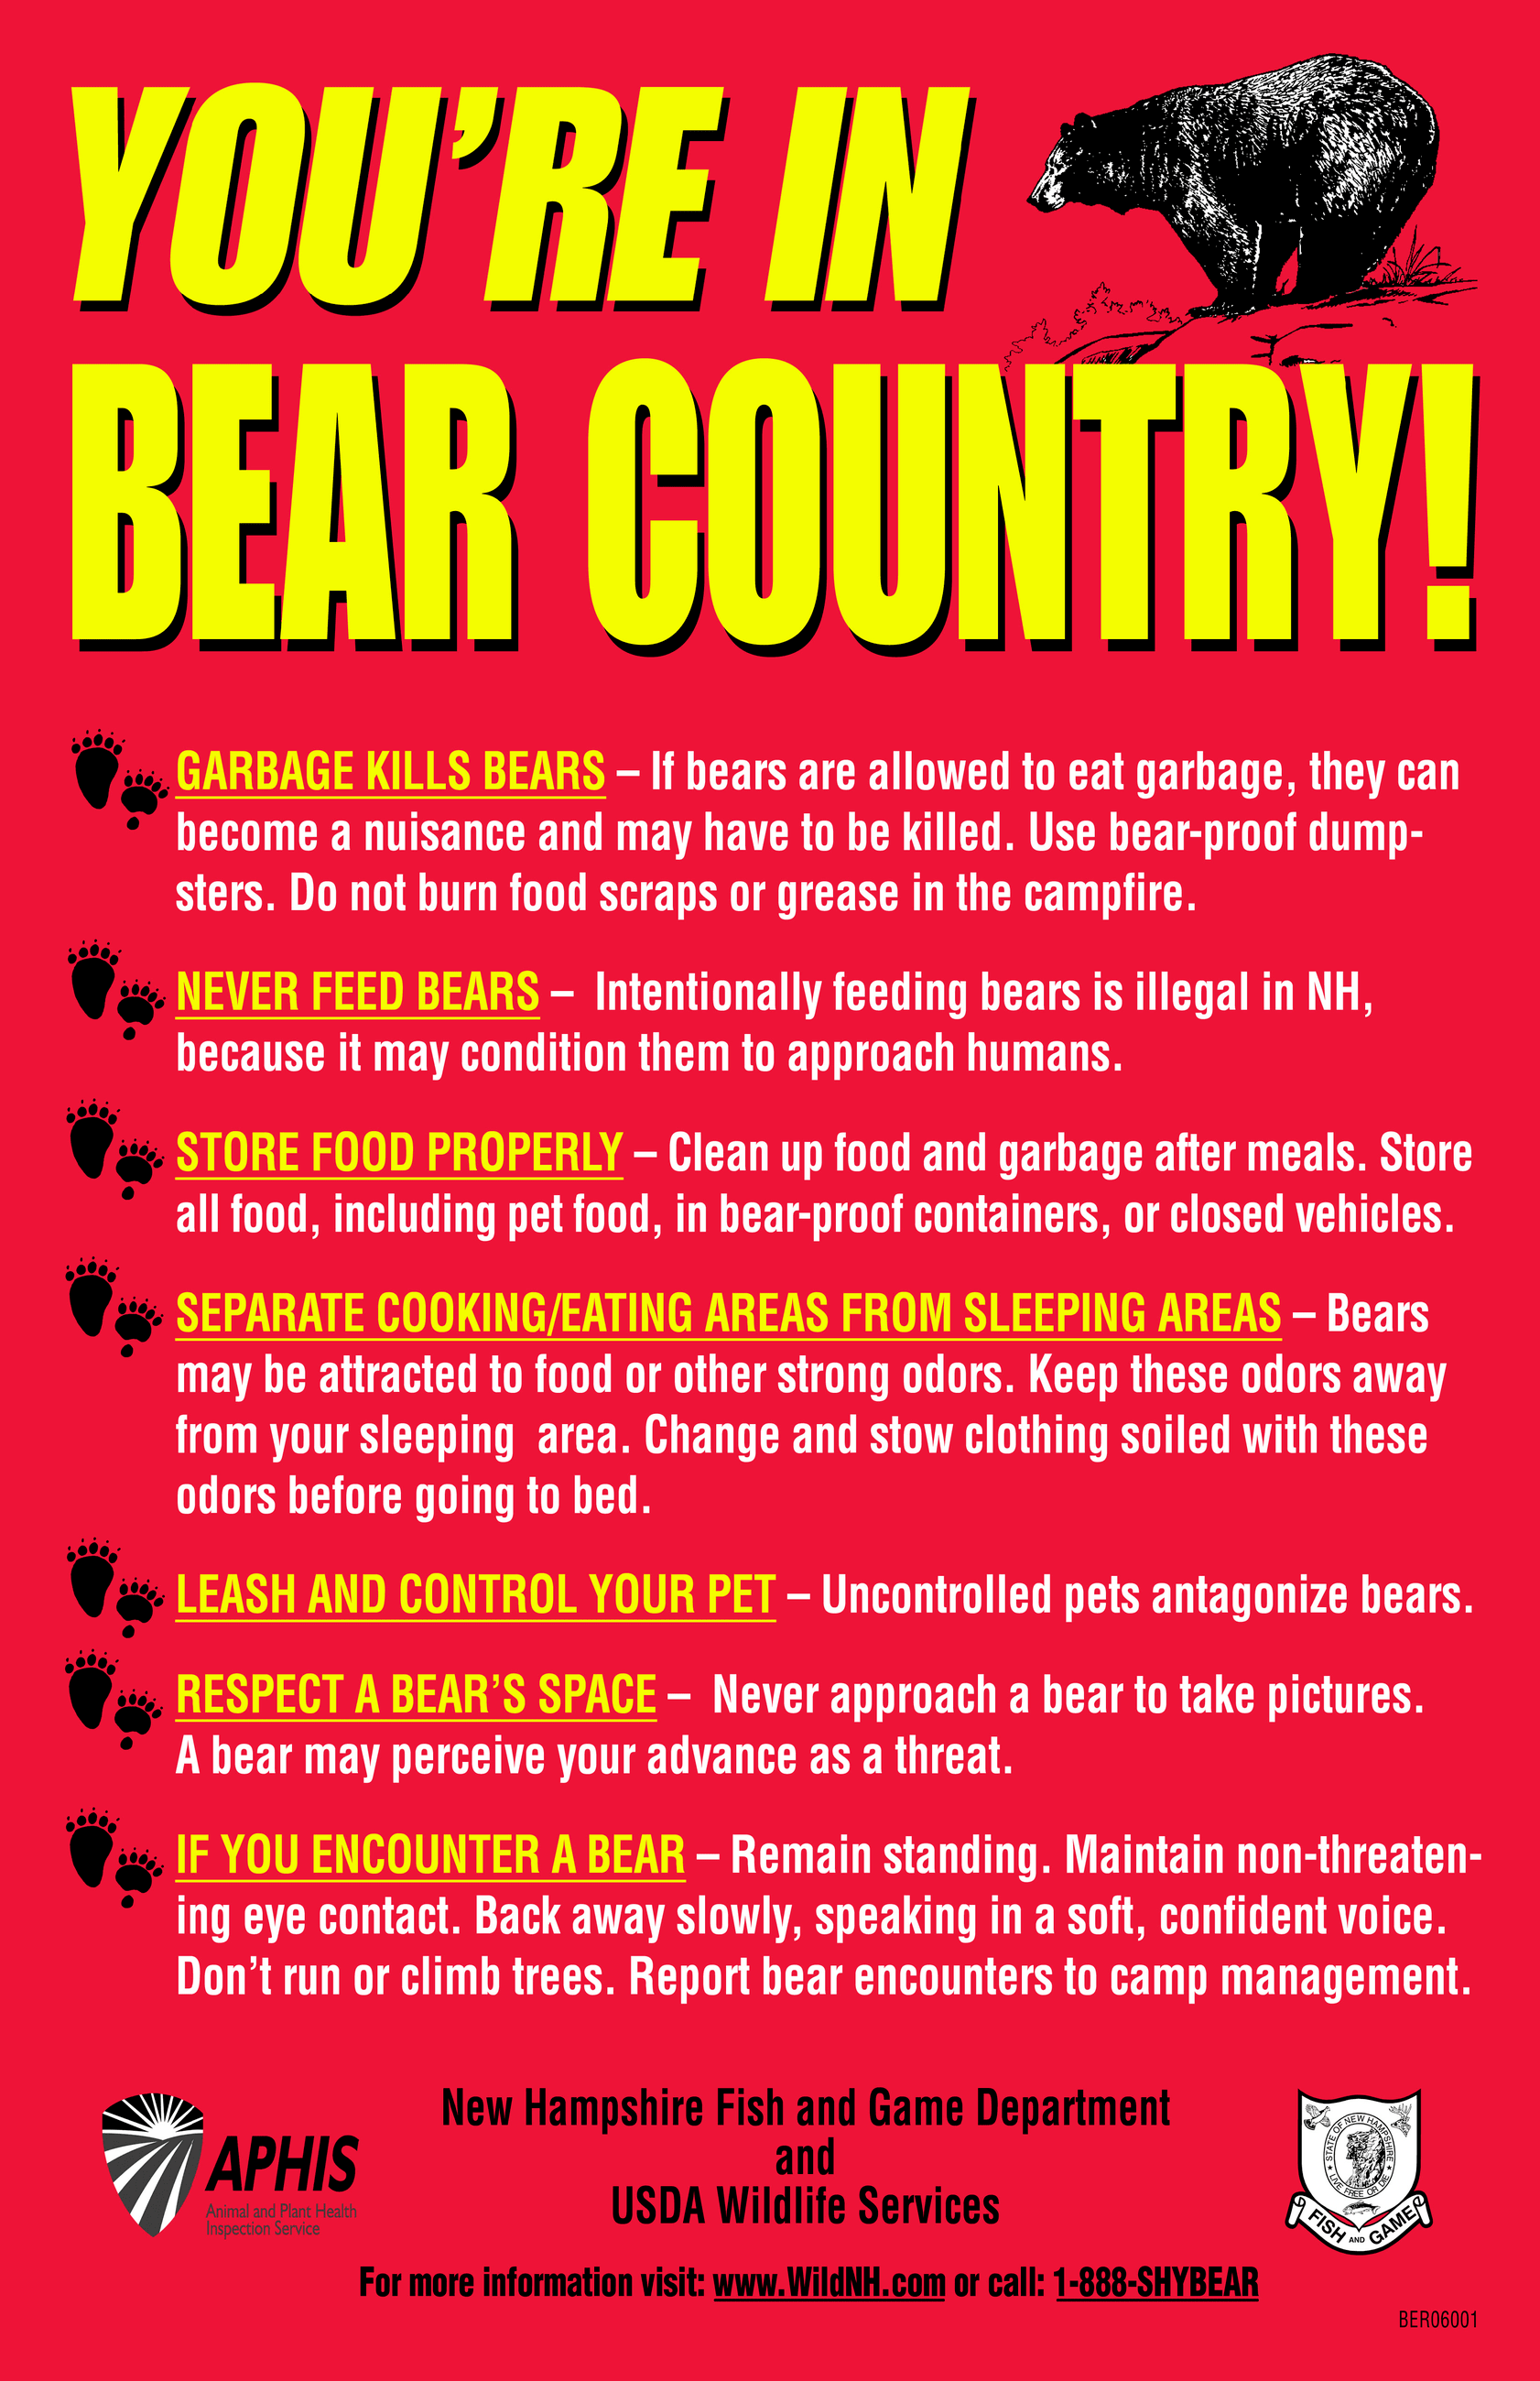 &#34You&#39re in Bear Country!&#34 poster with safety tips